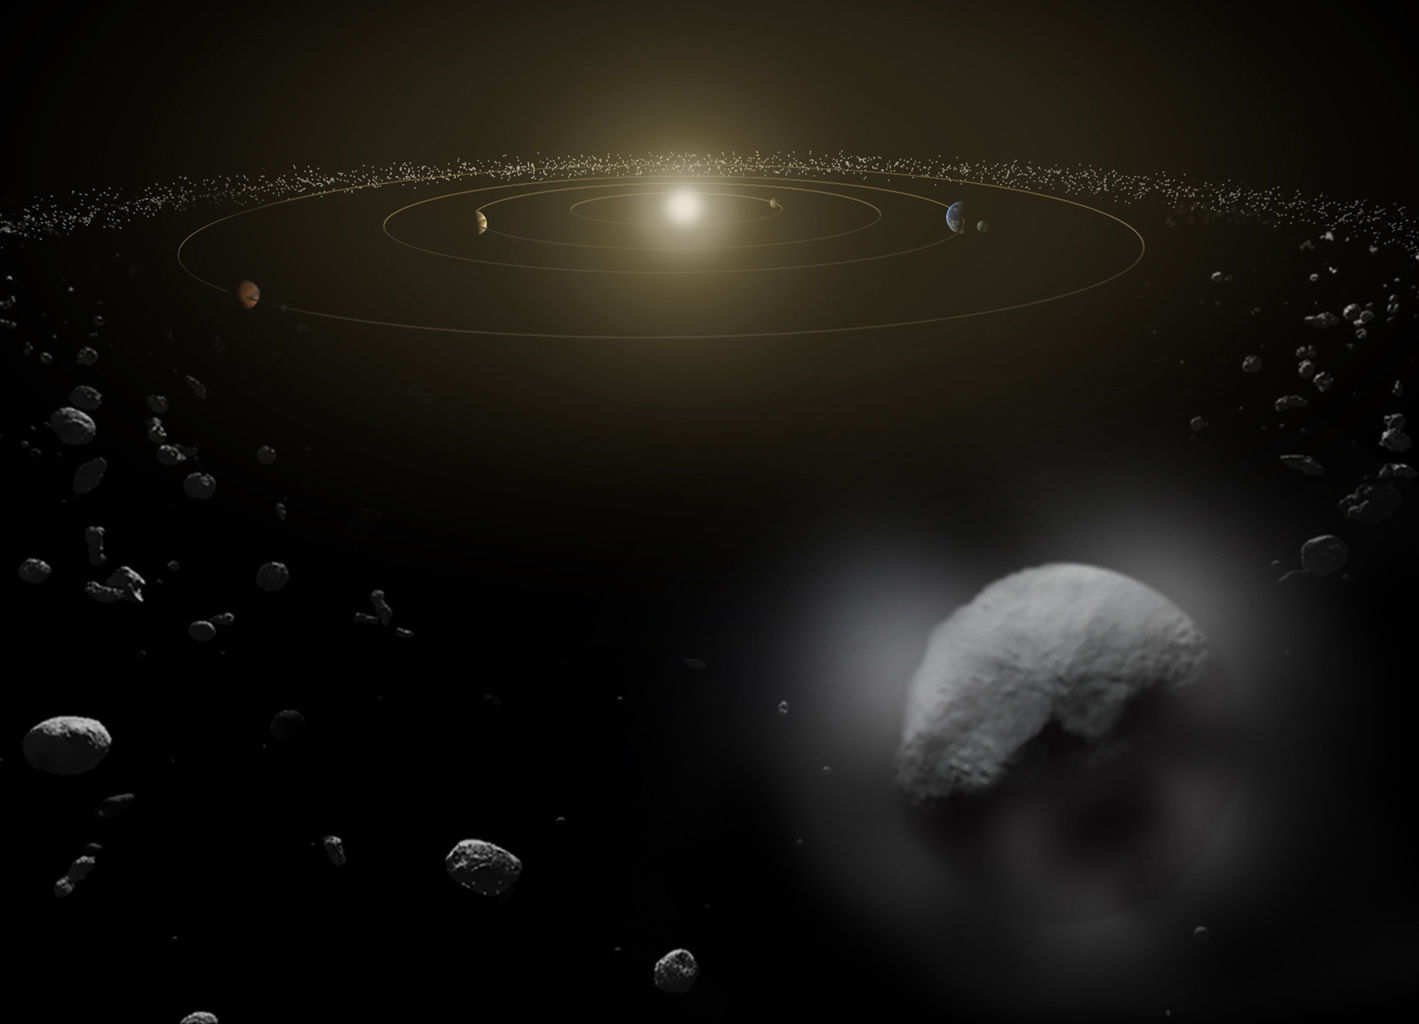 Dwarf Planets Questions including What planet is the